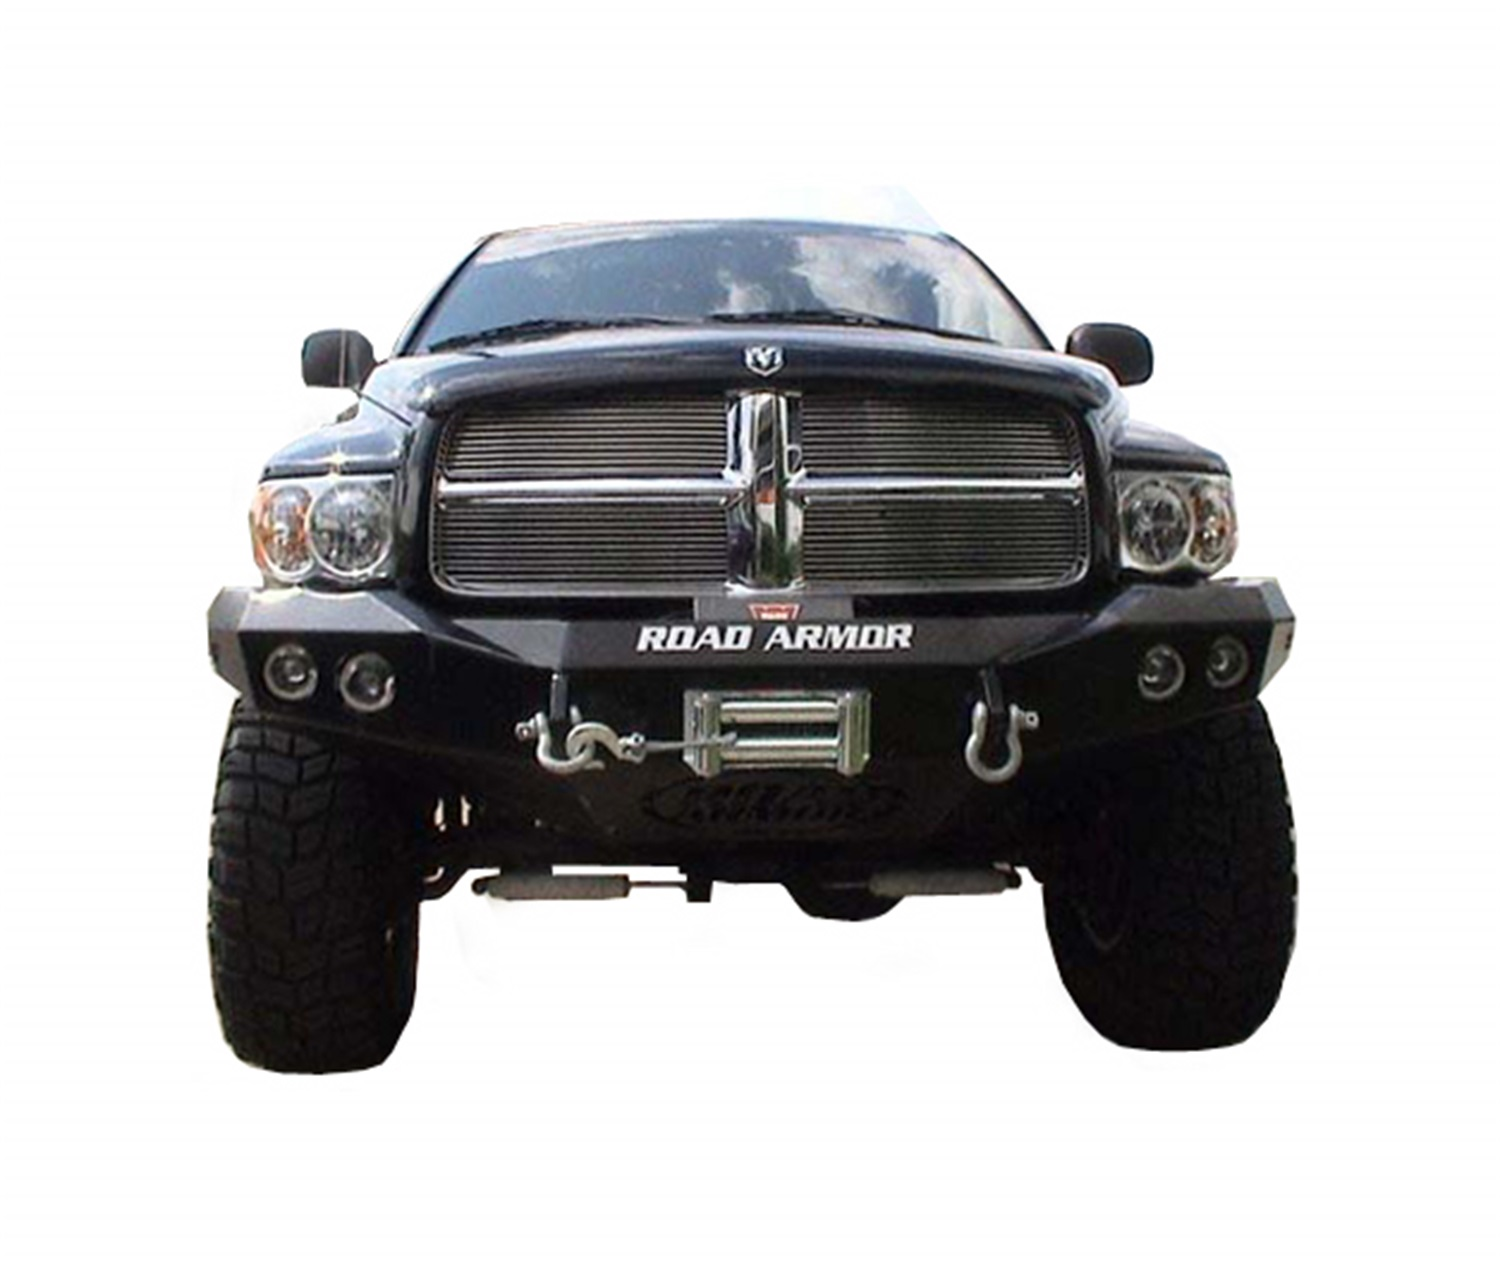 Road Armor Armor 44040B Front Stealth Bumper  w/Winch Mount  Satin Black at Sears.com